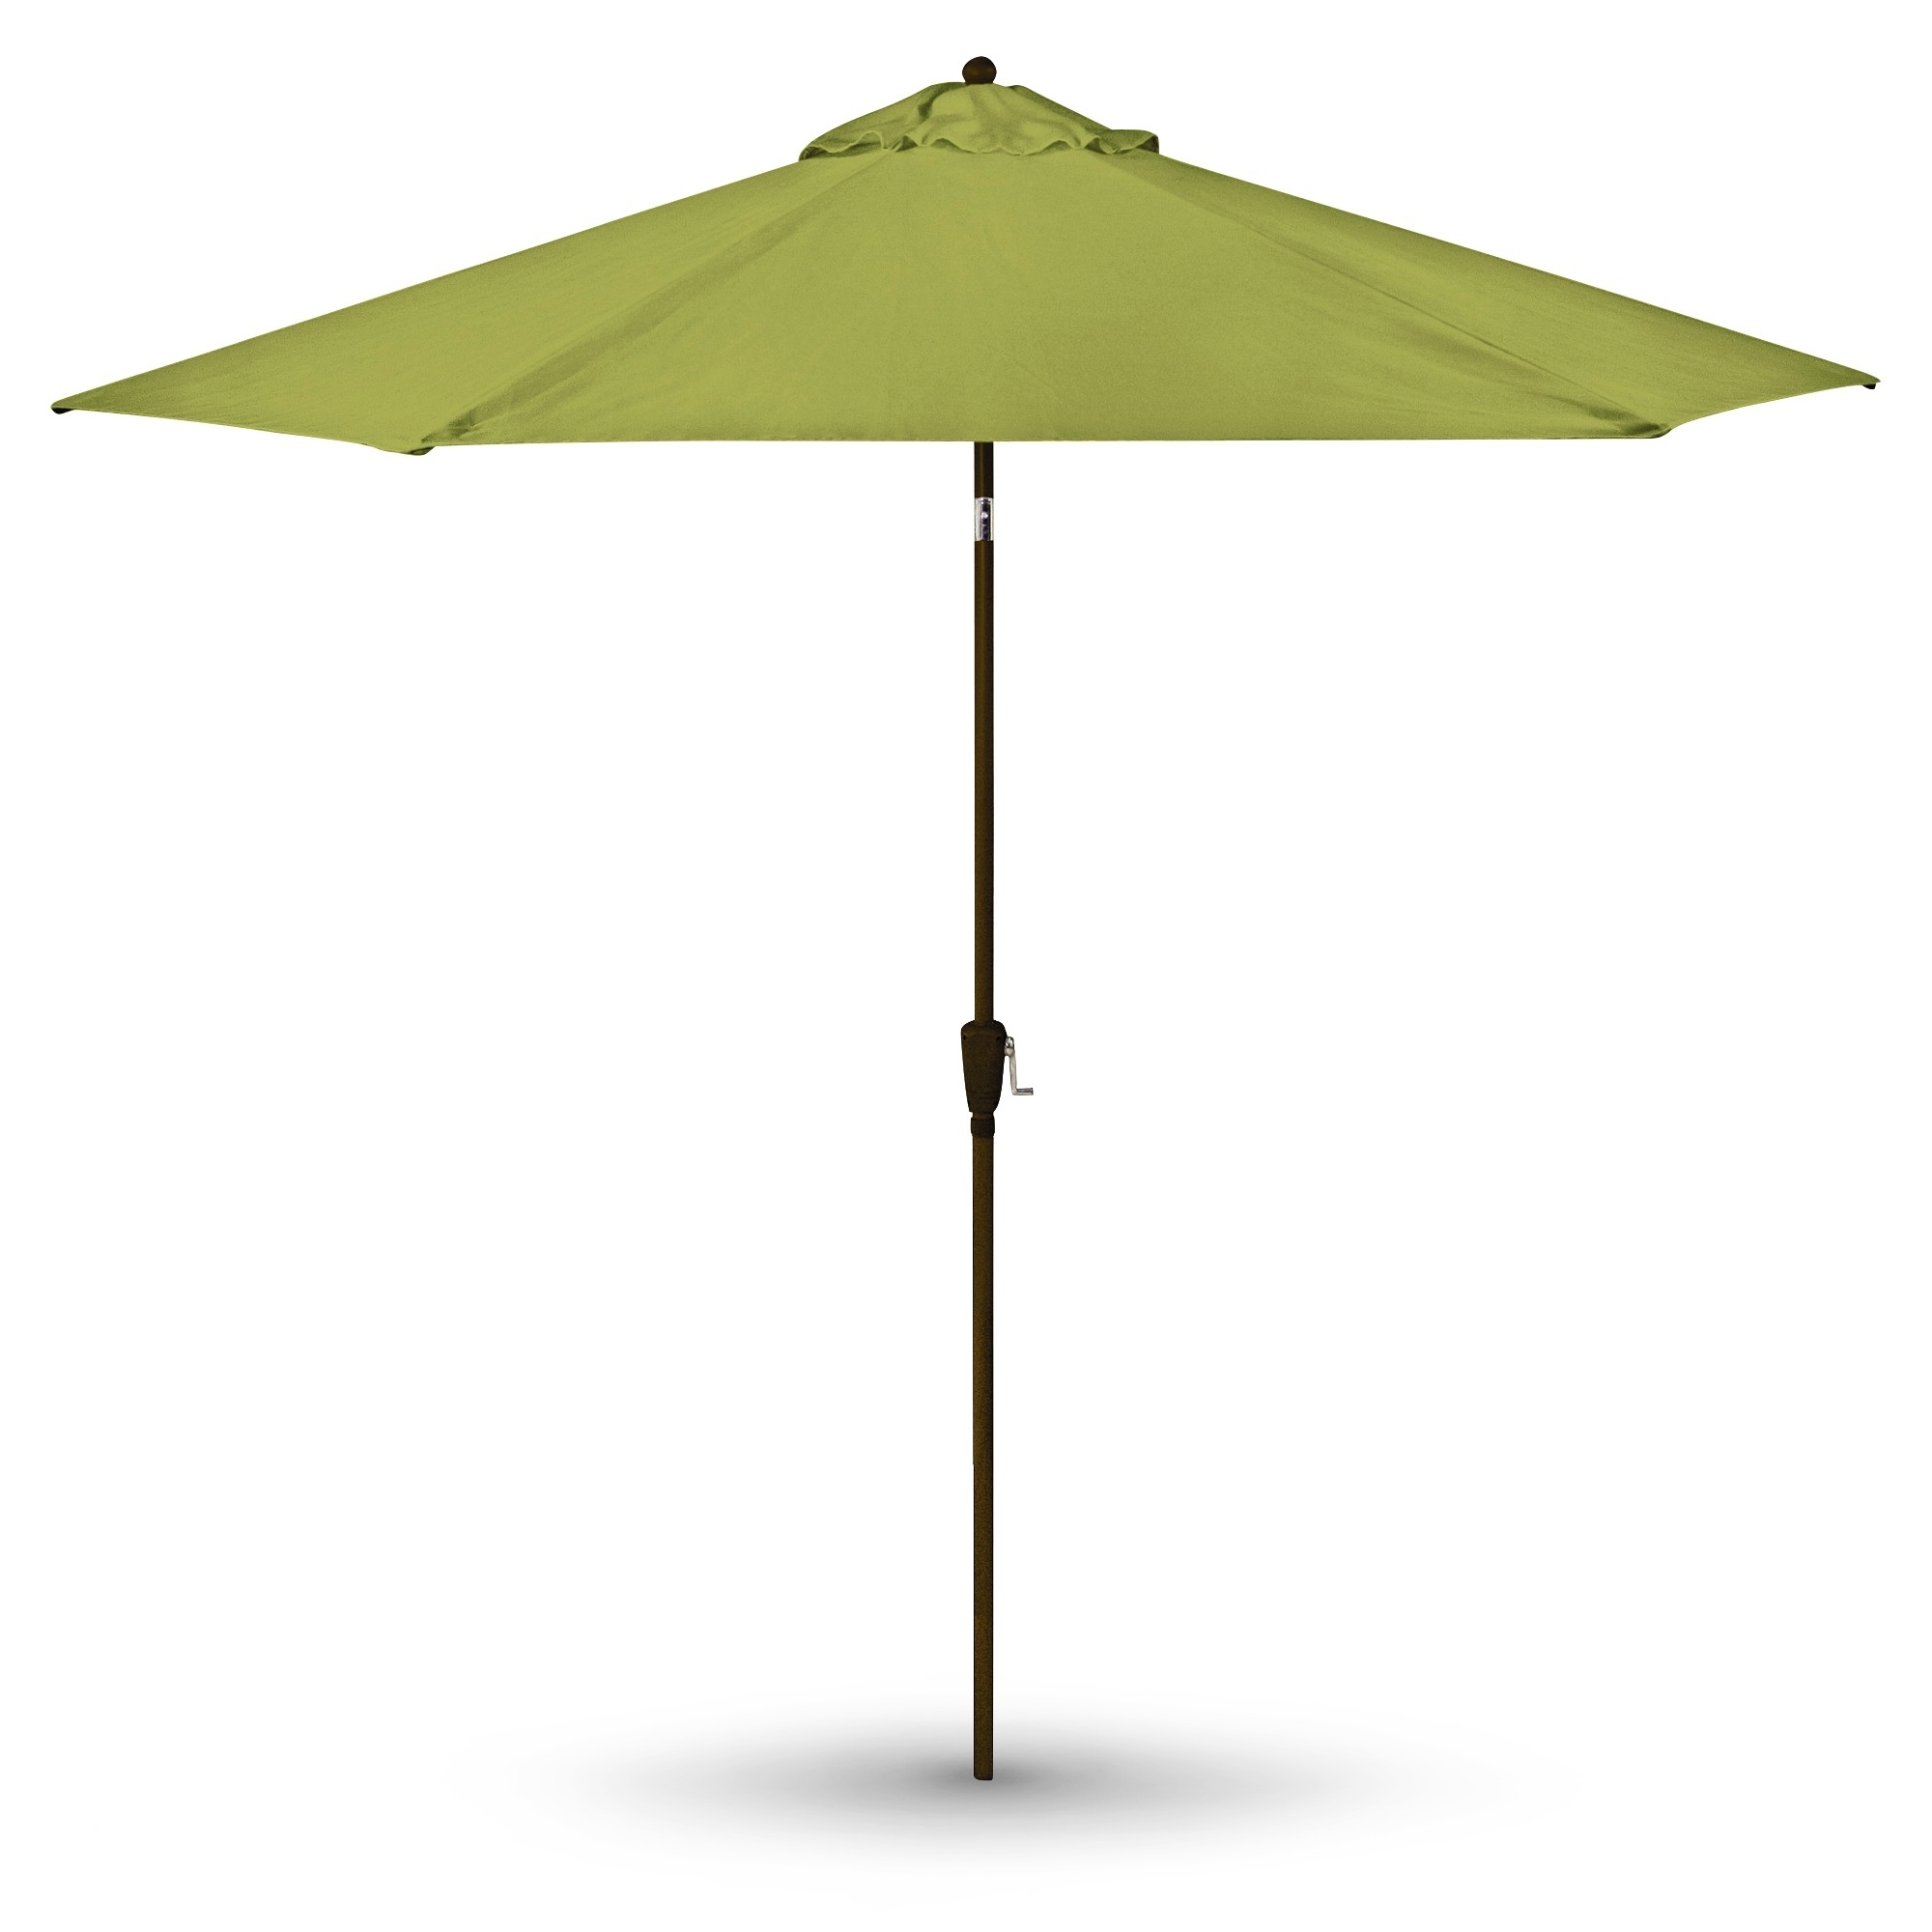 Hampton Bay Patio Umbrellas Within Latest Furniture: Patio Umbrella Will Suit With Hampton Bay Patio Furniture (Gallery 13 of 20)